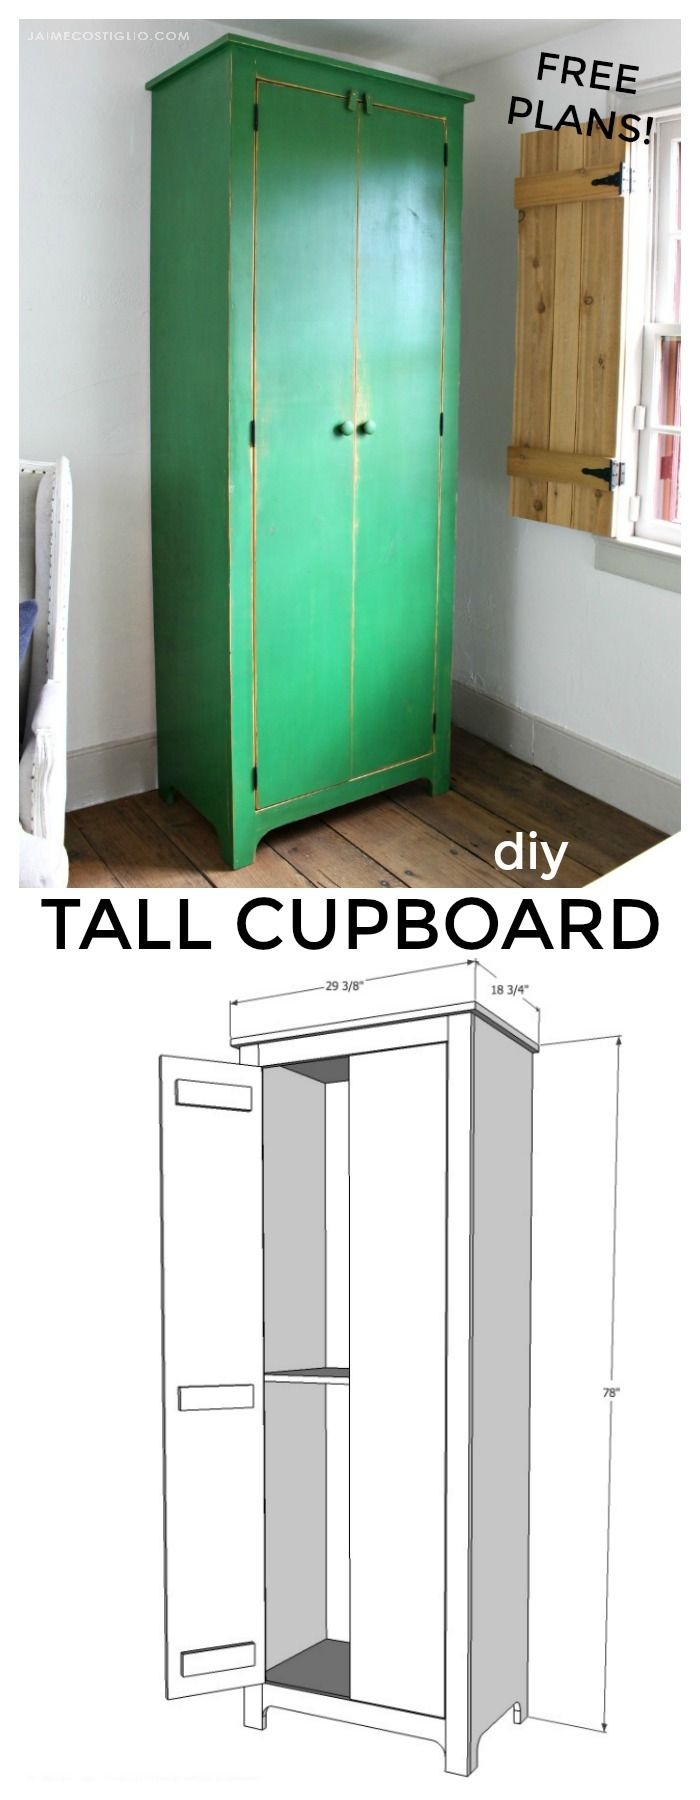 an old fashioned cupboard i just built this past weekend no itu0027s not this bright green in person and yes iu0027ve put together free plans so you can build it